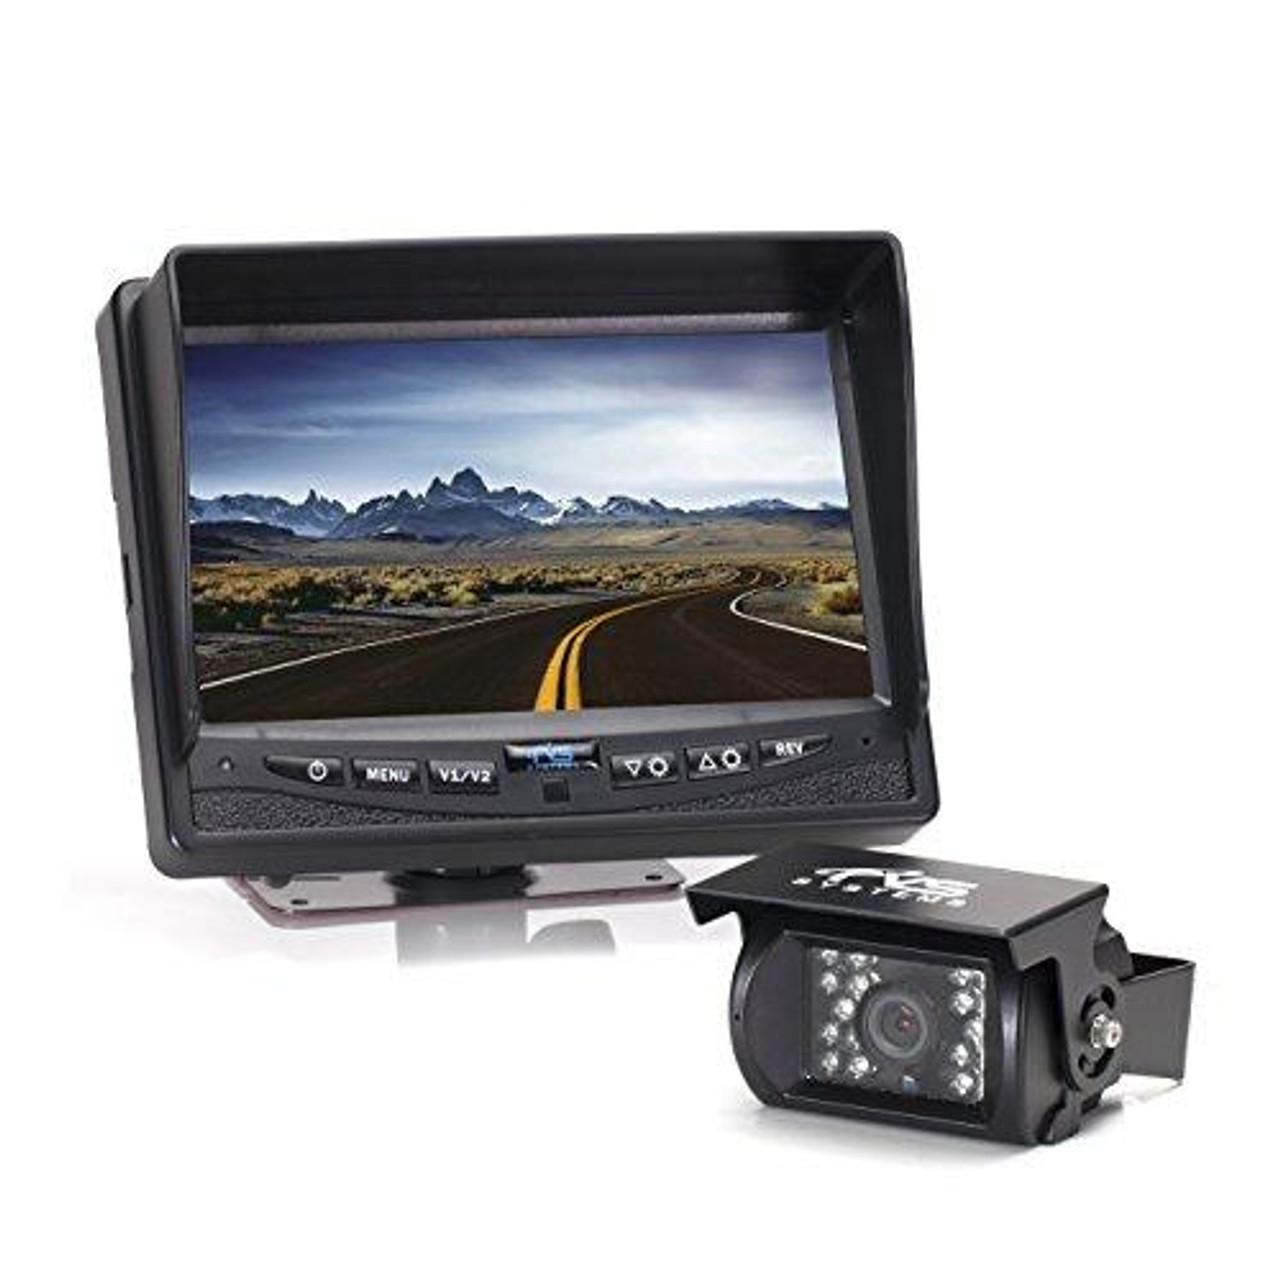 Rear View Safety Backup Camera System for Trucks, Buses, RV's, Emergency and Industrial Vehicles RVS-770613